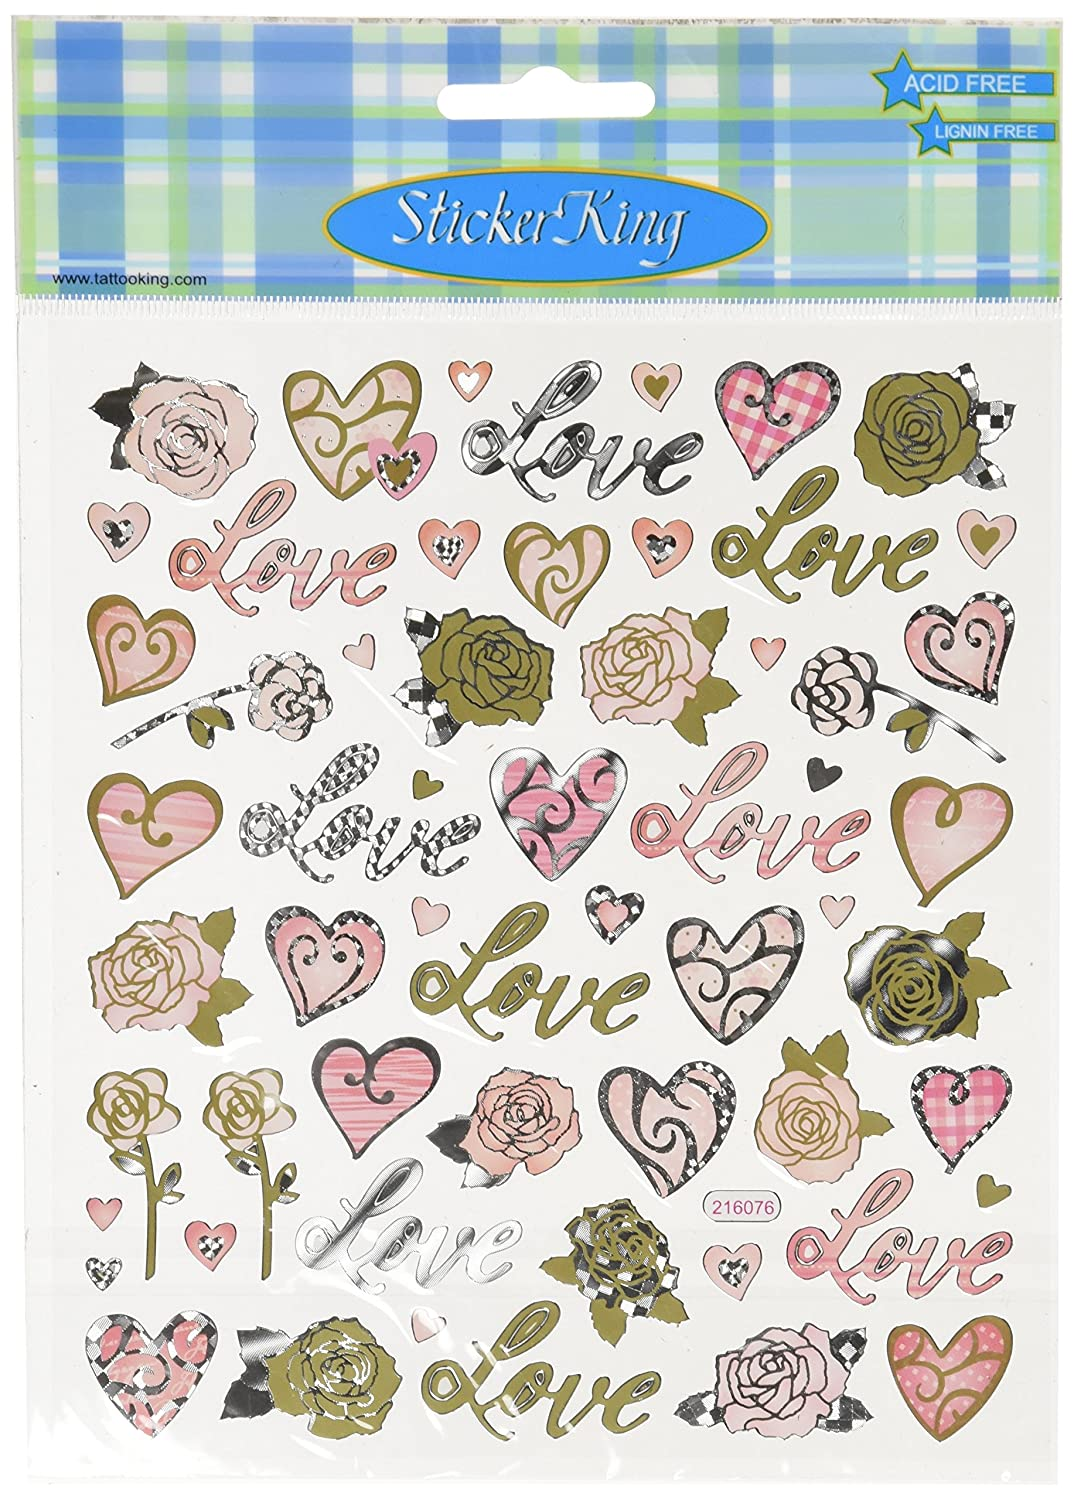 In Network SK129MC-4198 Tattoo King Multi-Colored Stickers-Love /& Roses Notions